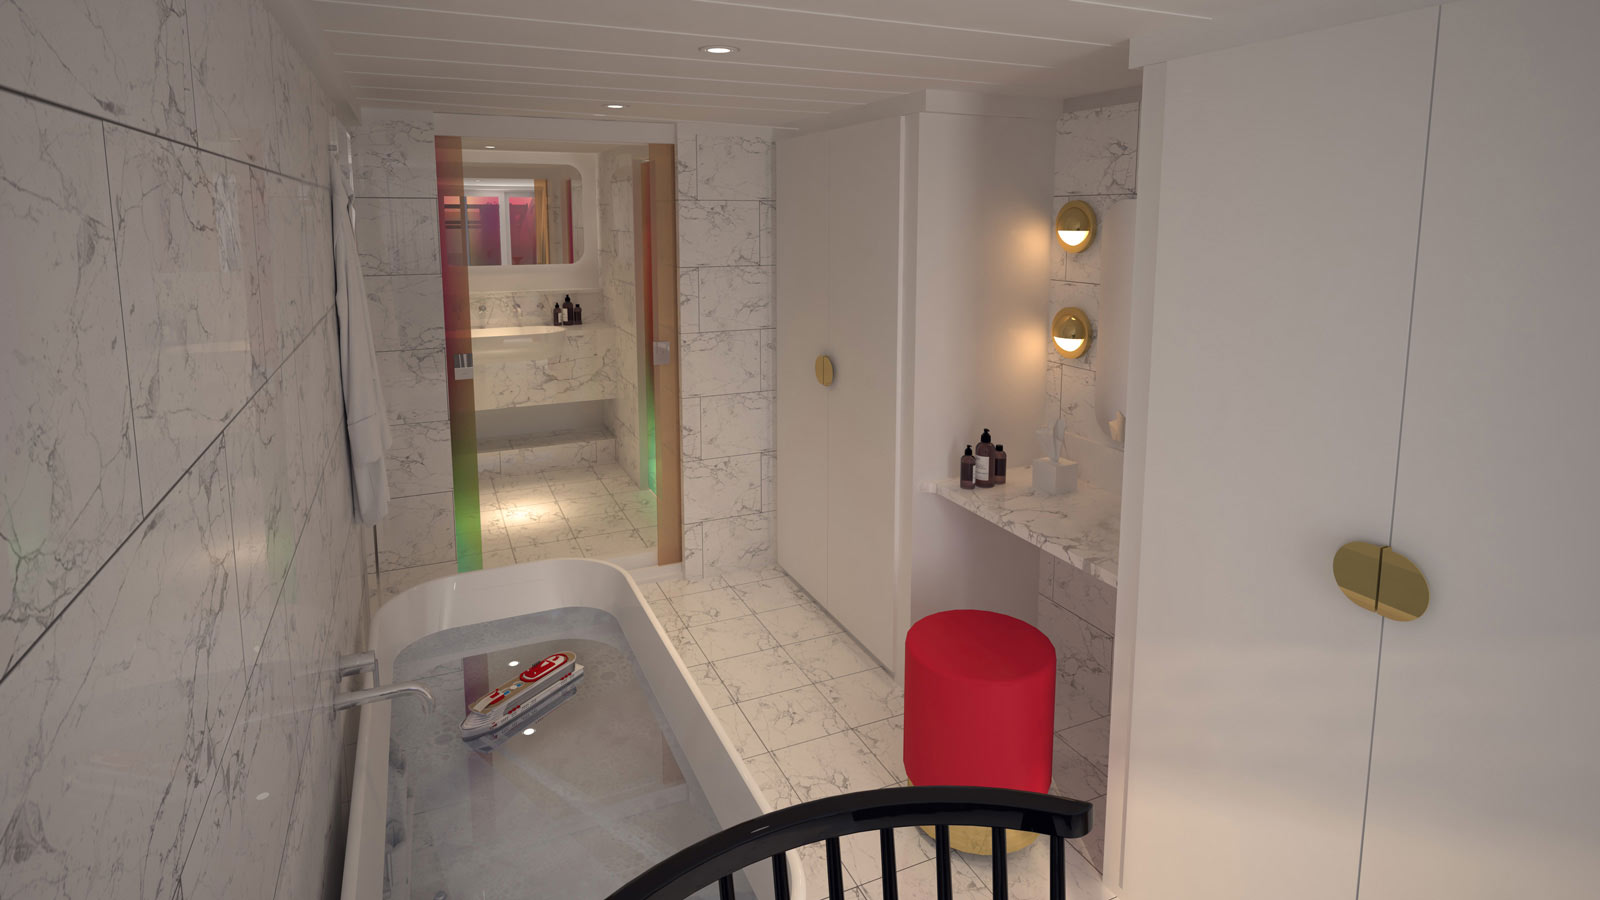 Luxury marble bathroom by Virgin Voyages.